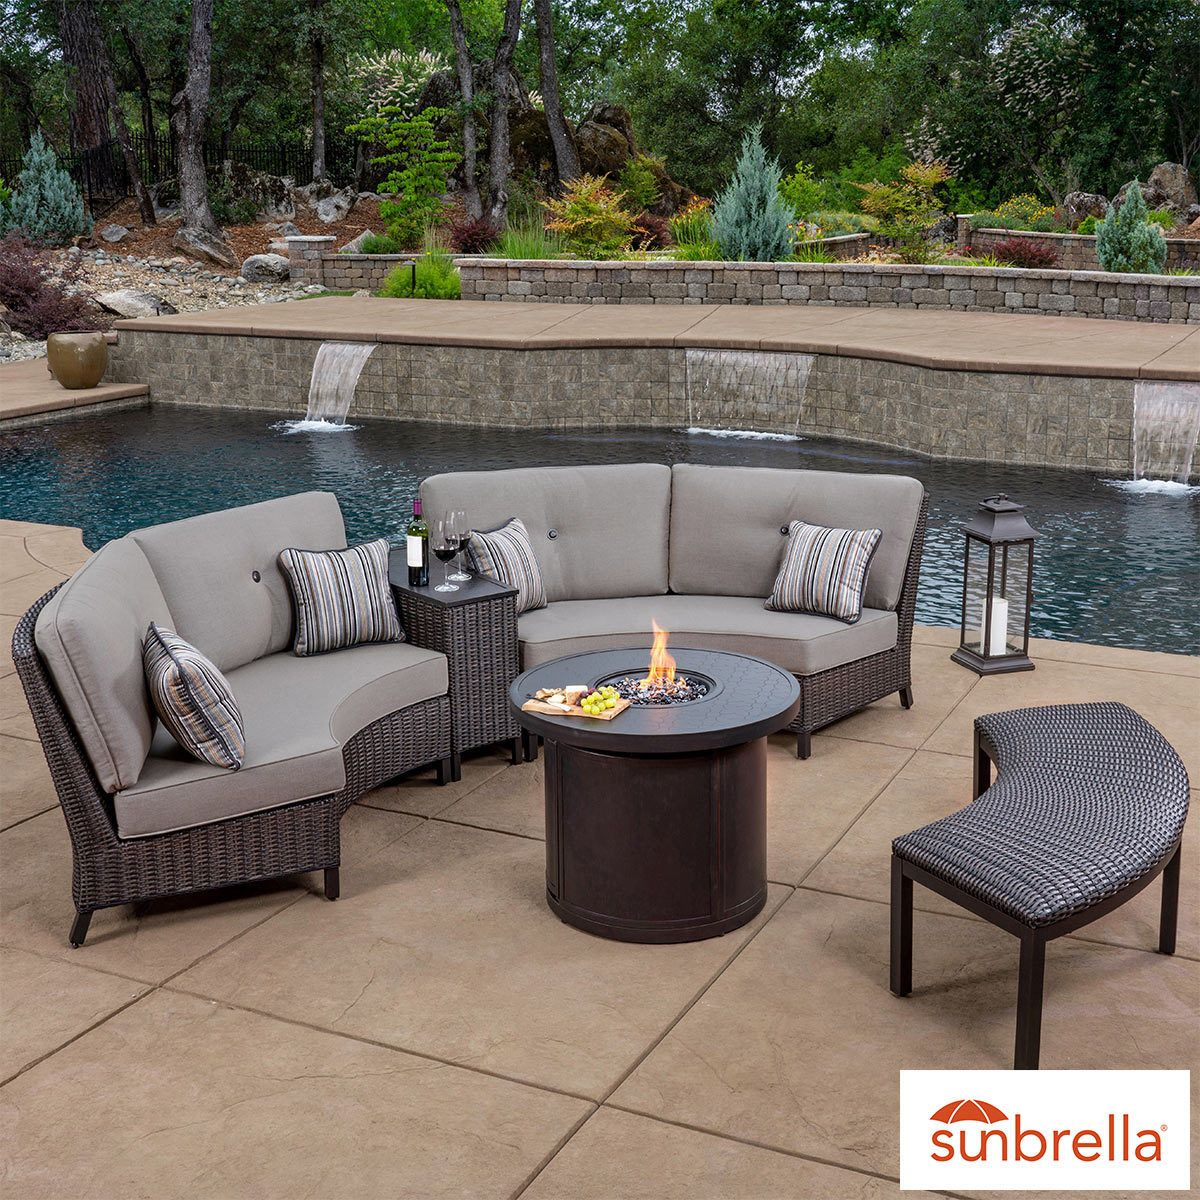 Sunvilla Riviera 5 Piece Woven Fire Sectional Seating Set Patio